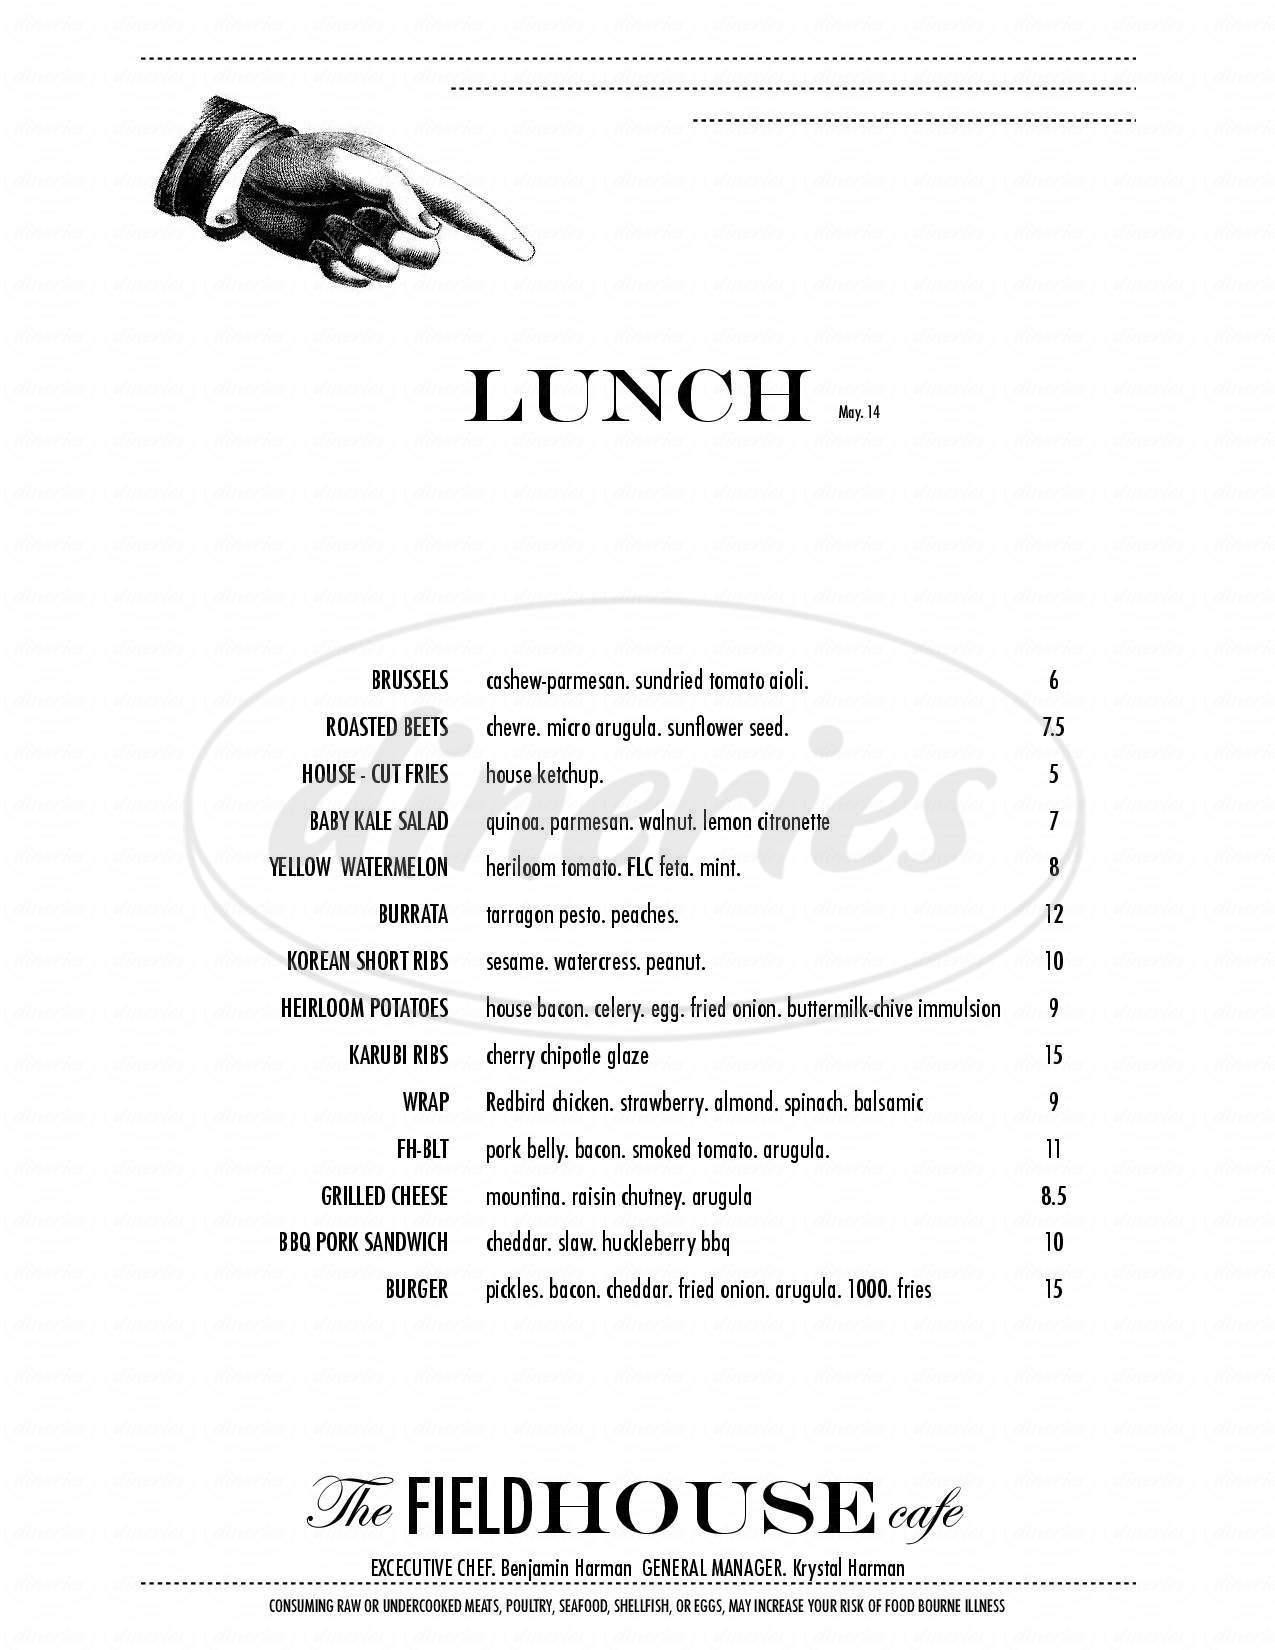 menu for The Fieldhouse Cafe